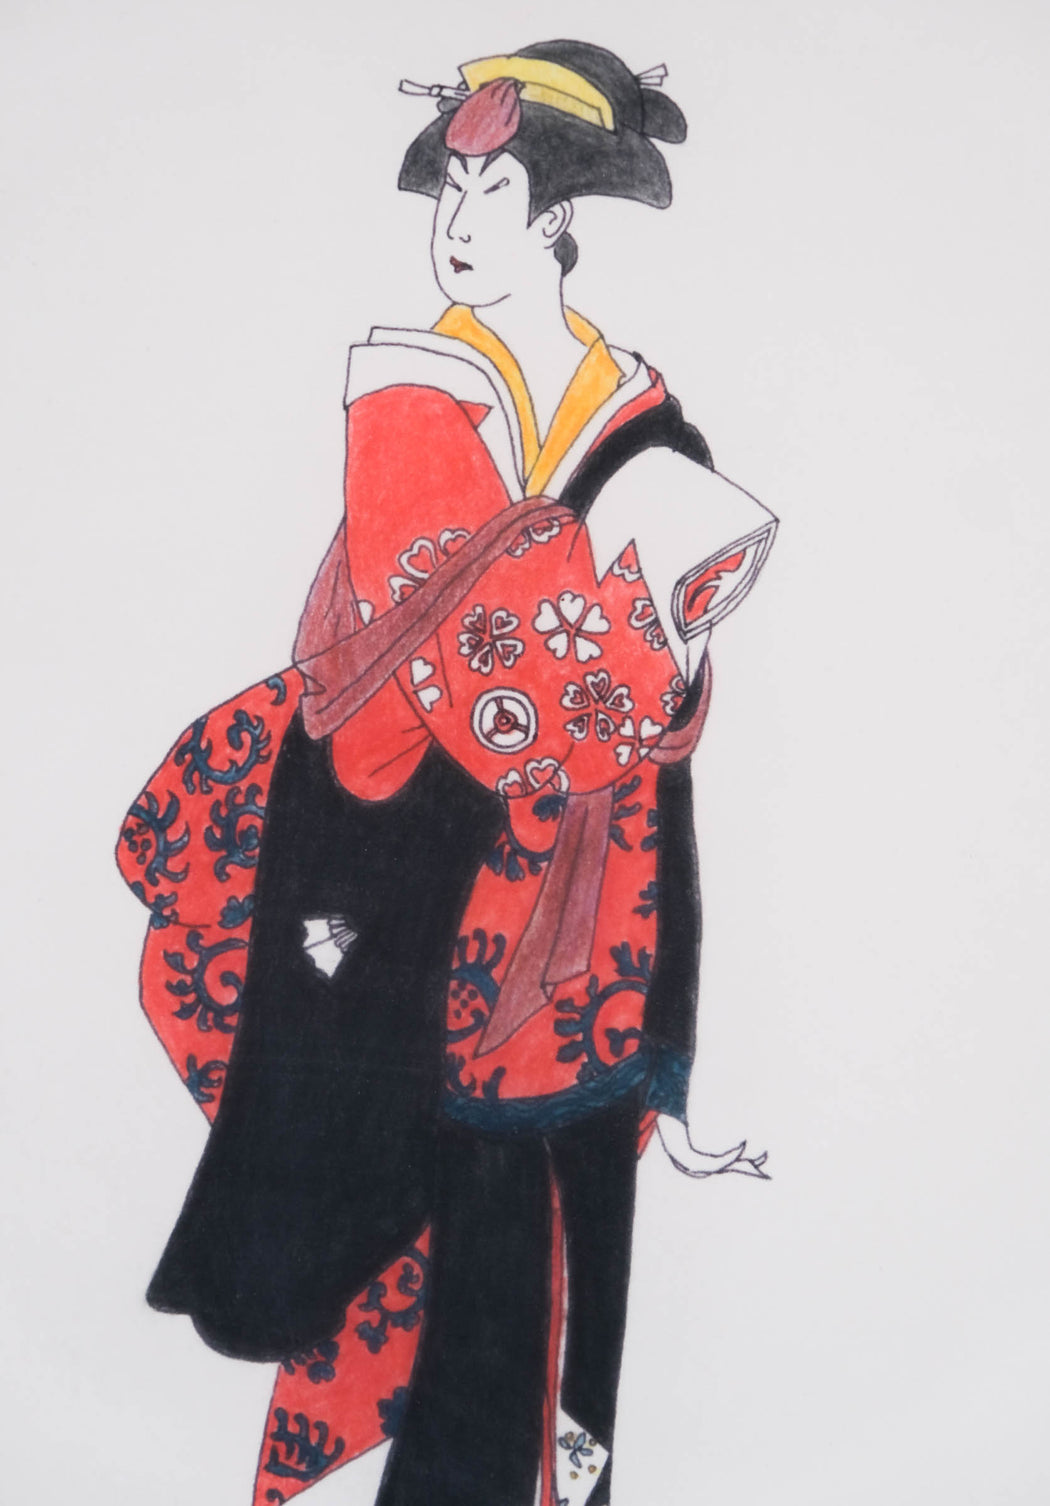 Vintage Geisha Art by Mary Liz Deppen